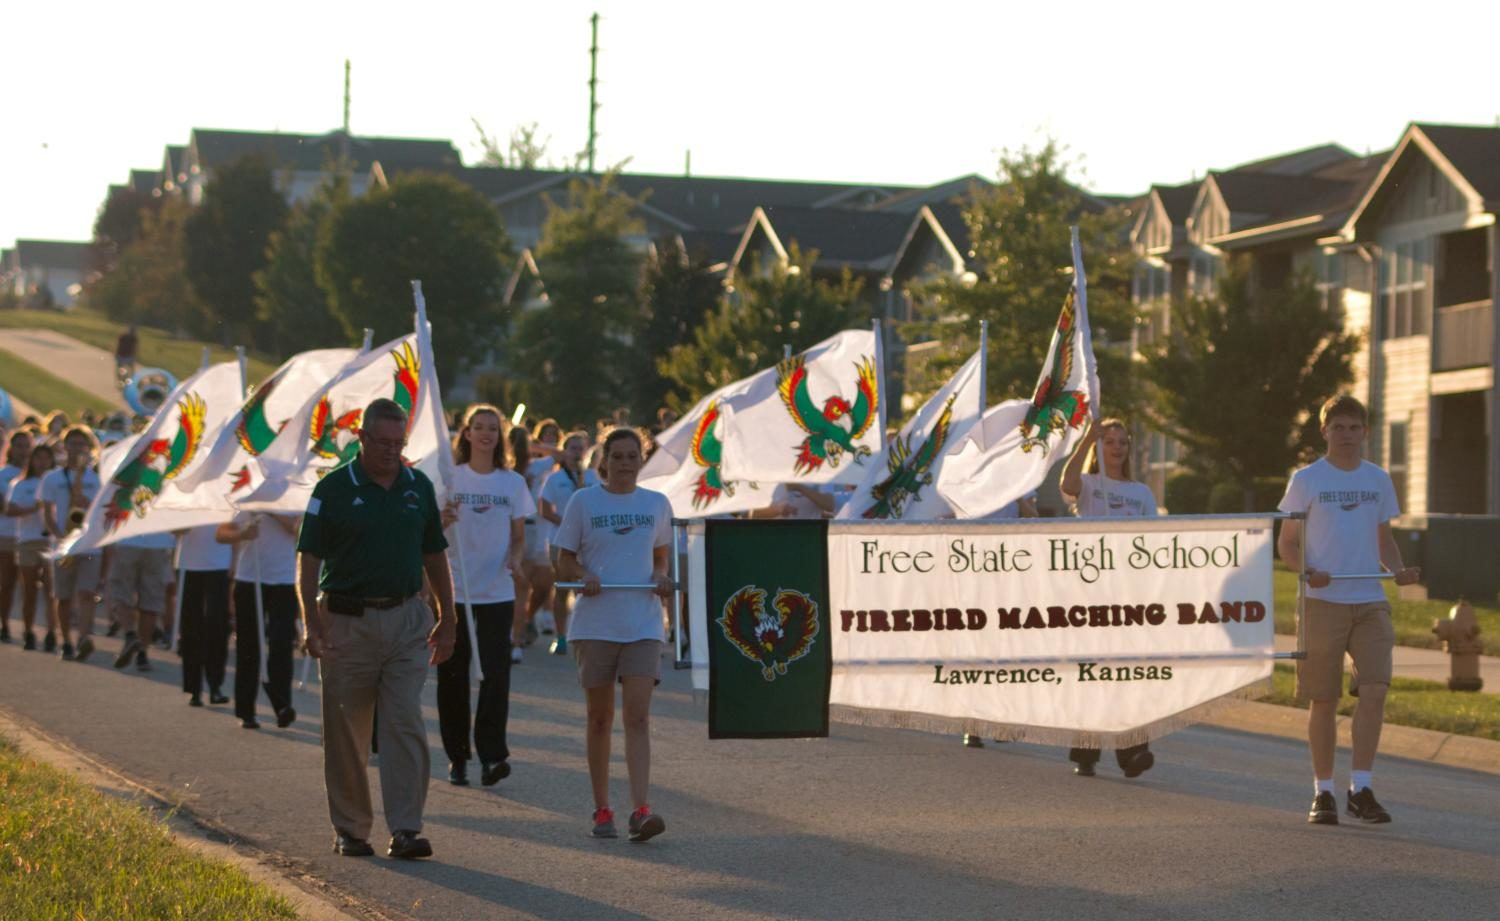 The fire bird marching band starts off the homecoming parade on September 18th. The parade underwent some changes this year, including the route.